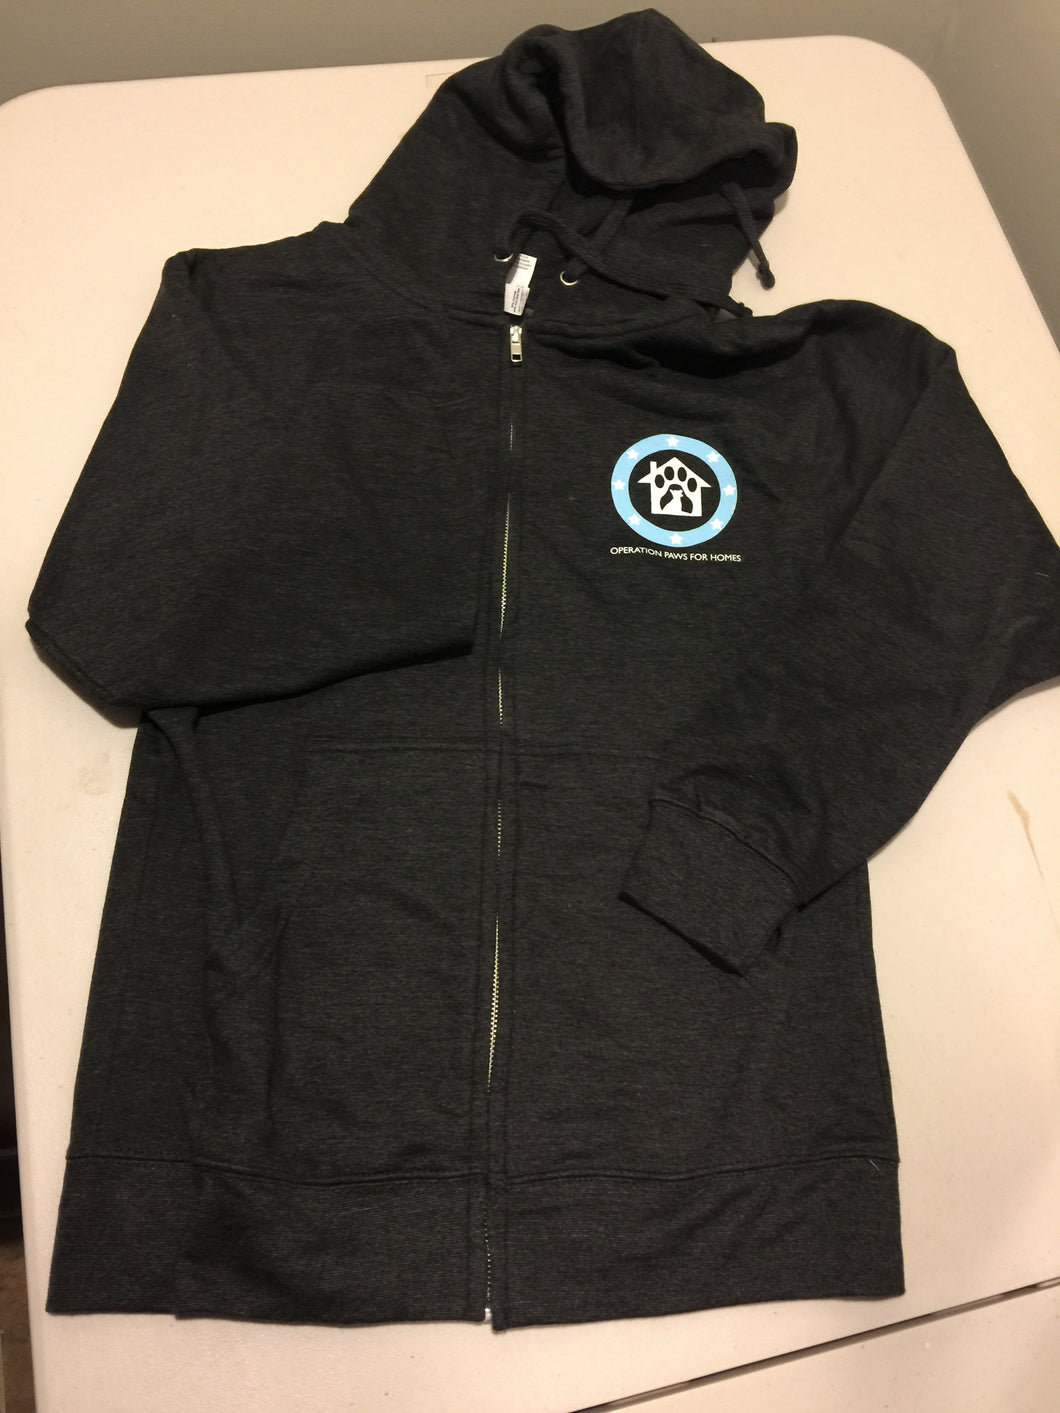 Adult Black Operation Paws for Rescue Zip-Up Hoodie